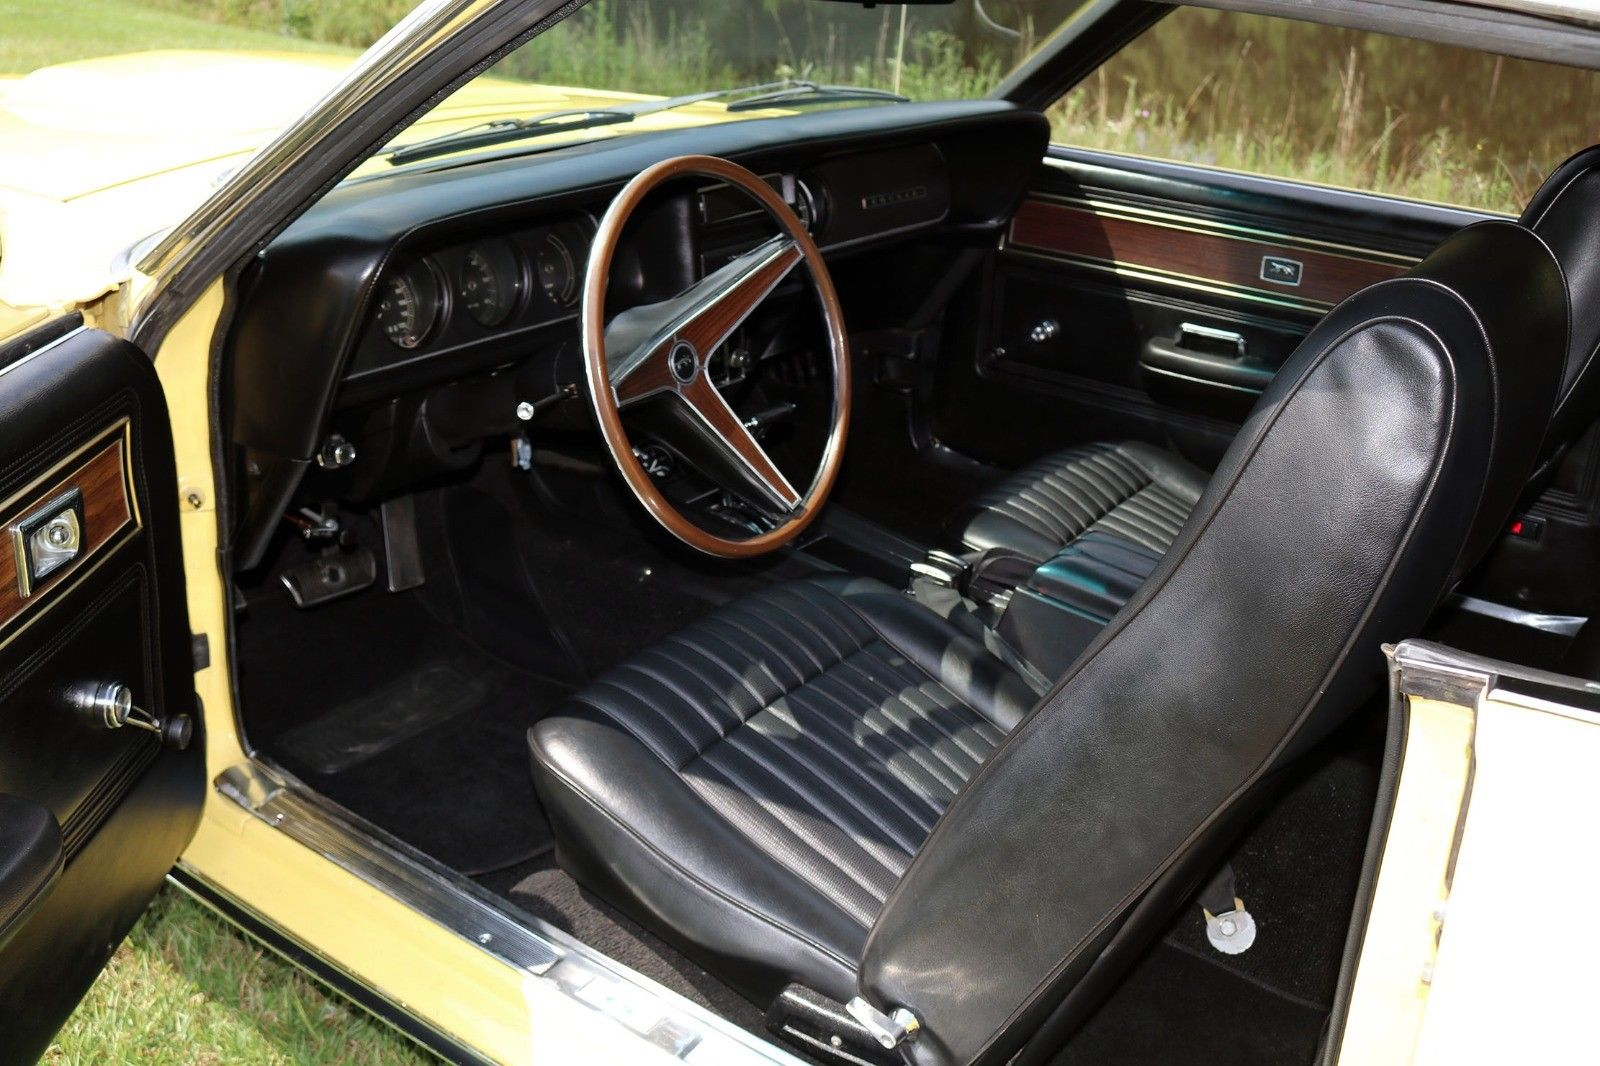 1969 Mercury Cougar Eliminator interior